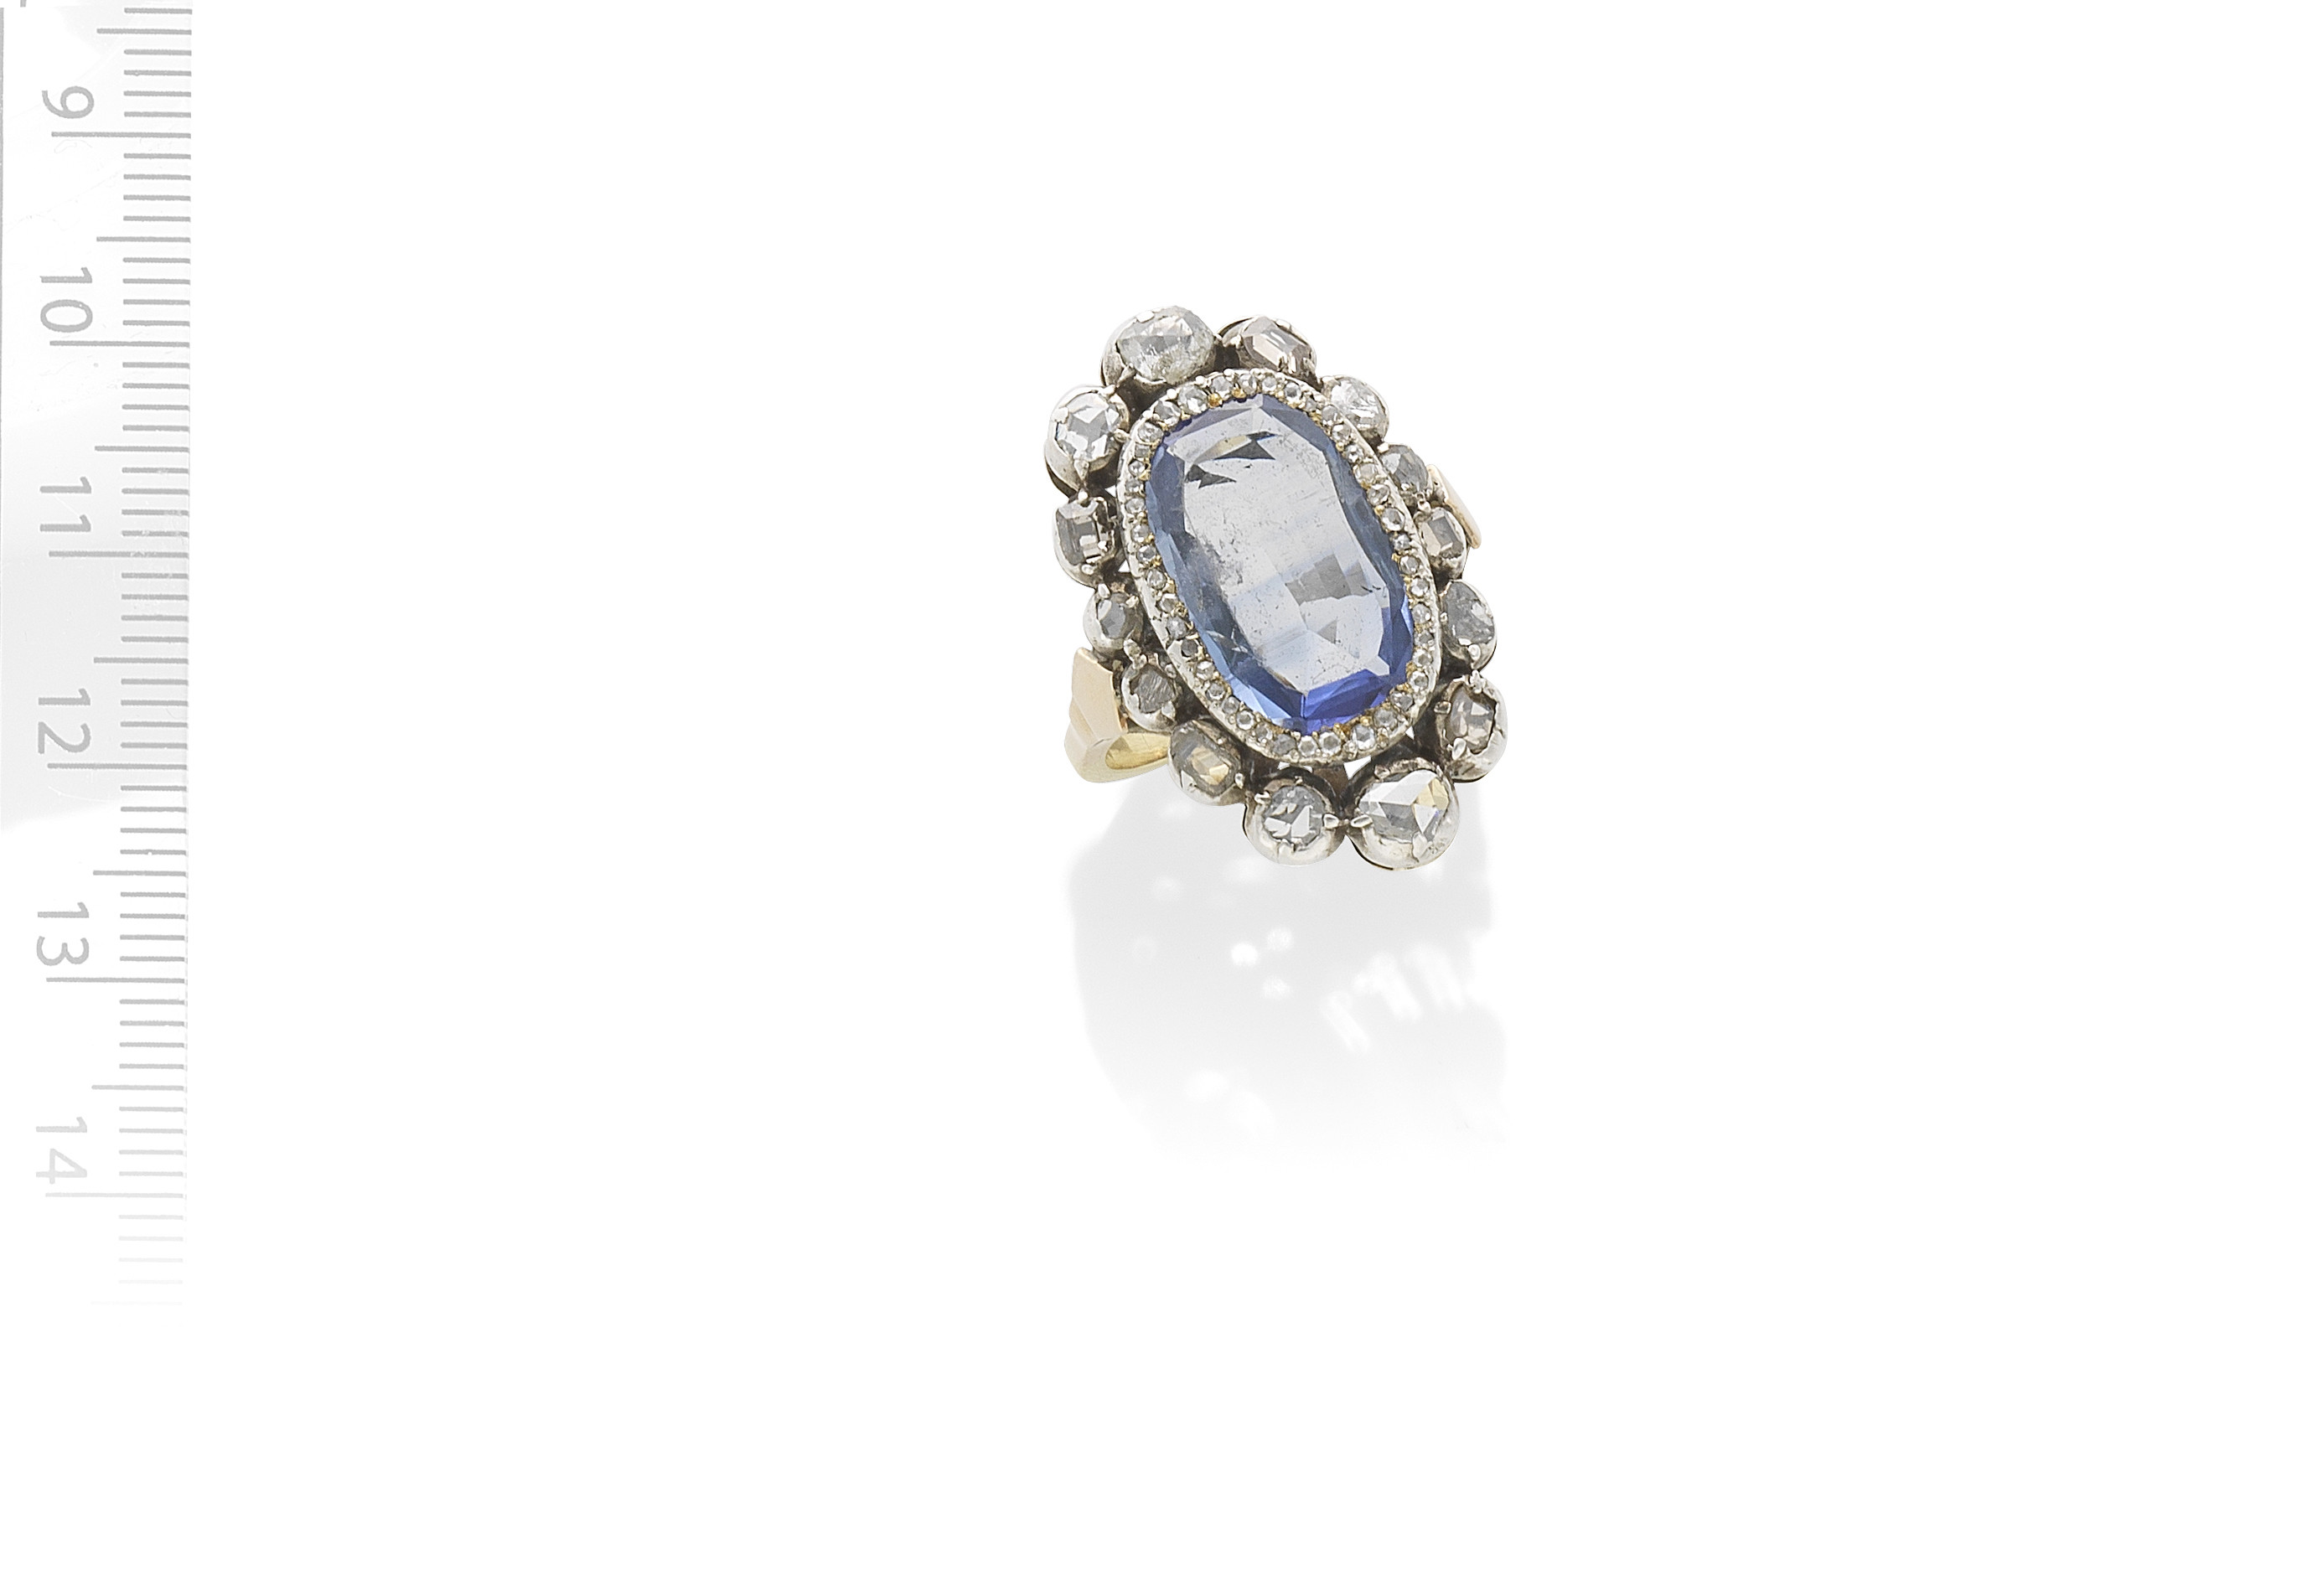 SAPPHIRE AND DIAMOND CLUSTER RING, 19TH CENTURY AND LATER